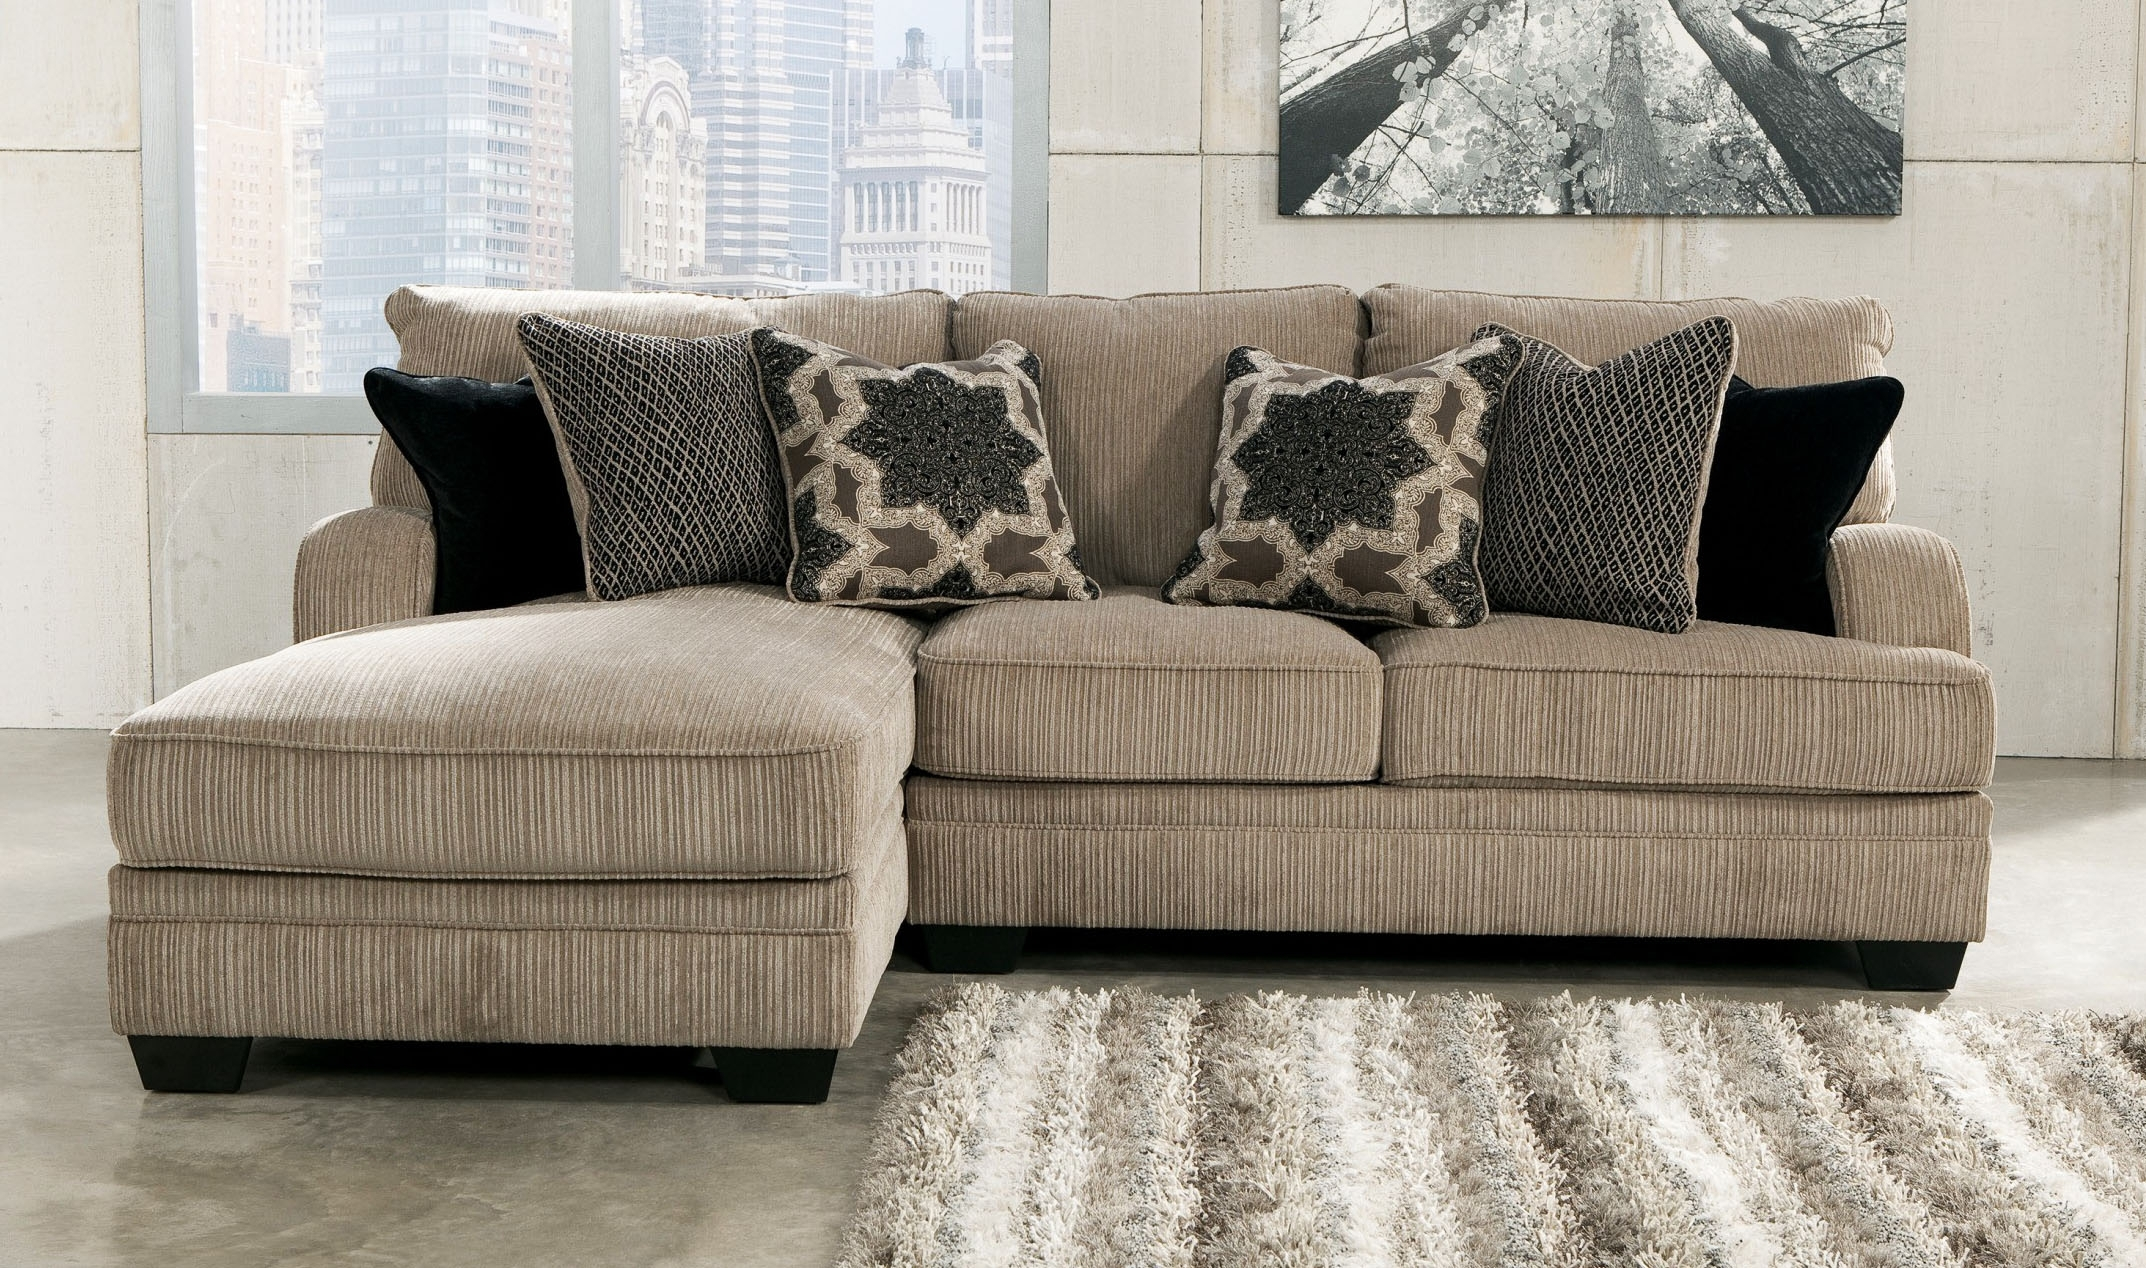 Luxury Small Sectional Sofa With Chaise Lounge 79 For Stickley For Small Sectional Sofas With Chaise And Ottoman (View 4 of 15)